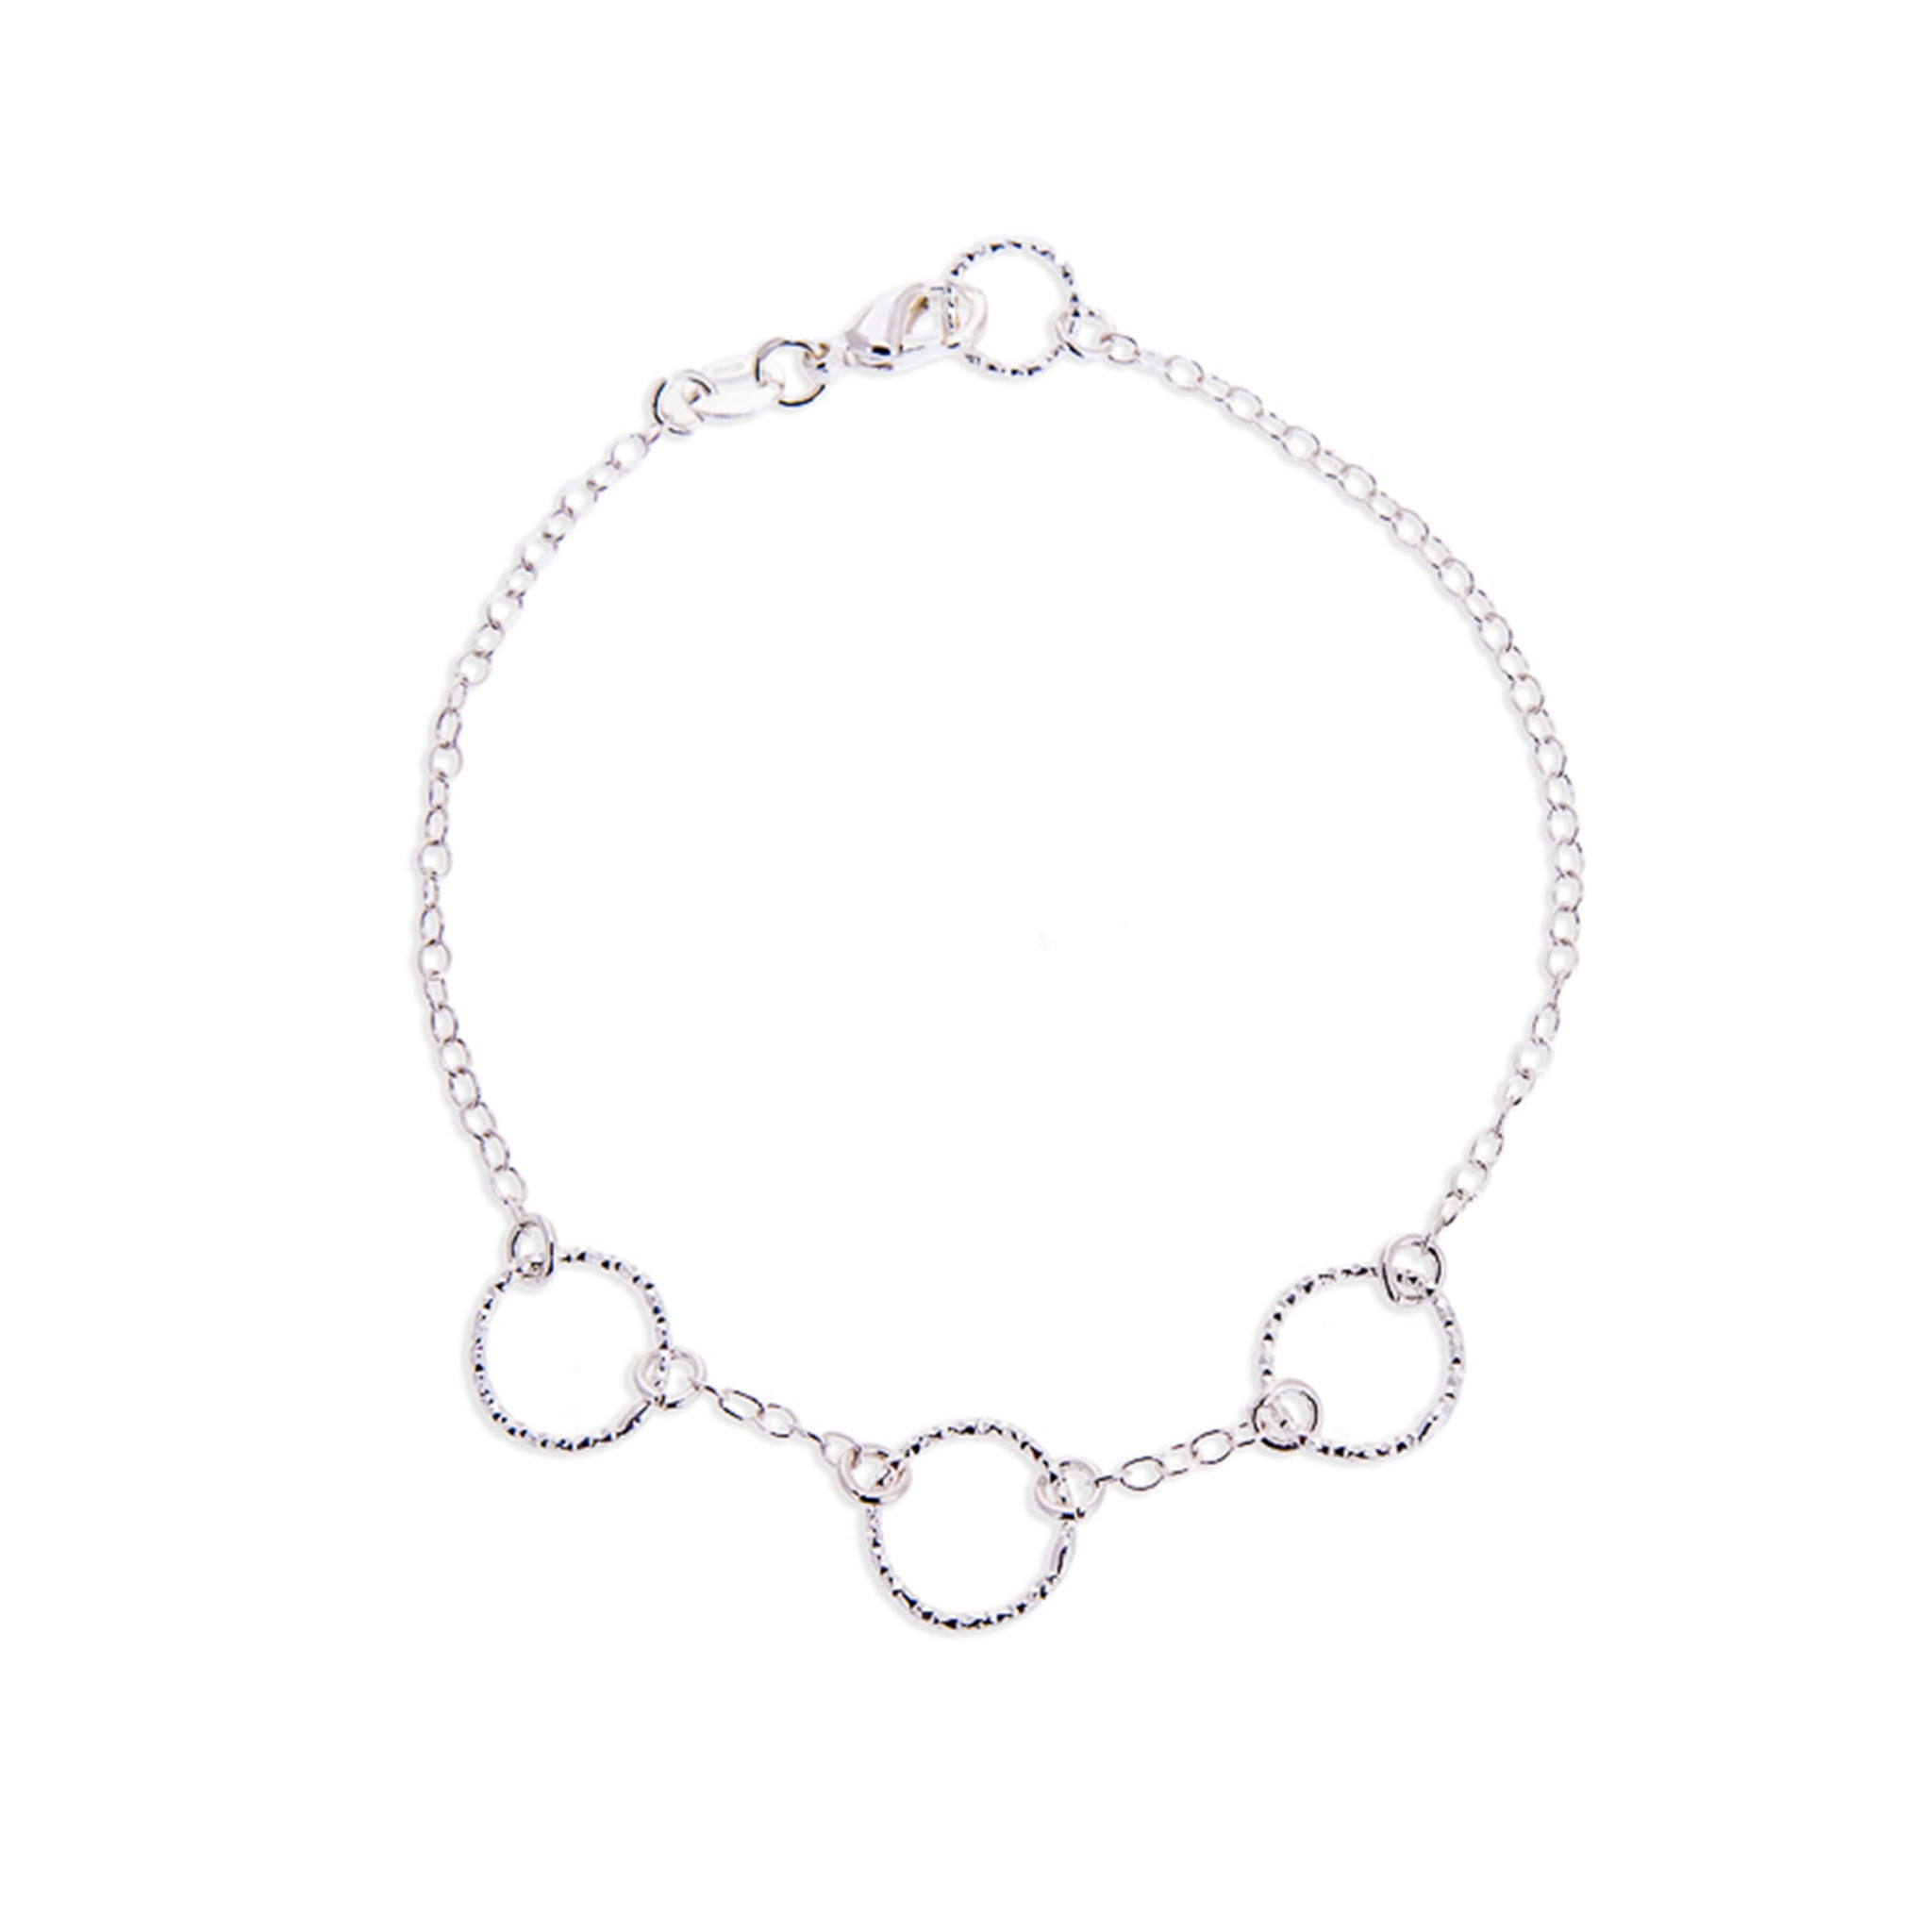 Christmas Gifts for Her - Handmade Sterling Silver Eternity Bracelet - Swanky Collection